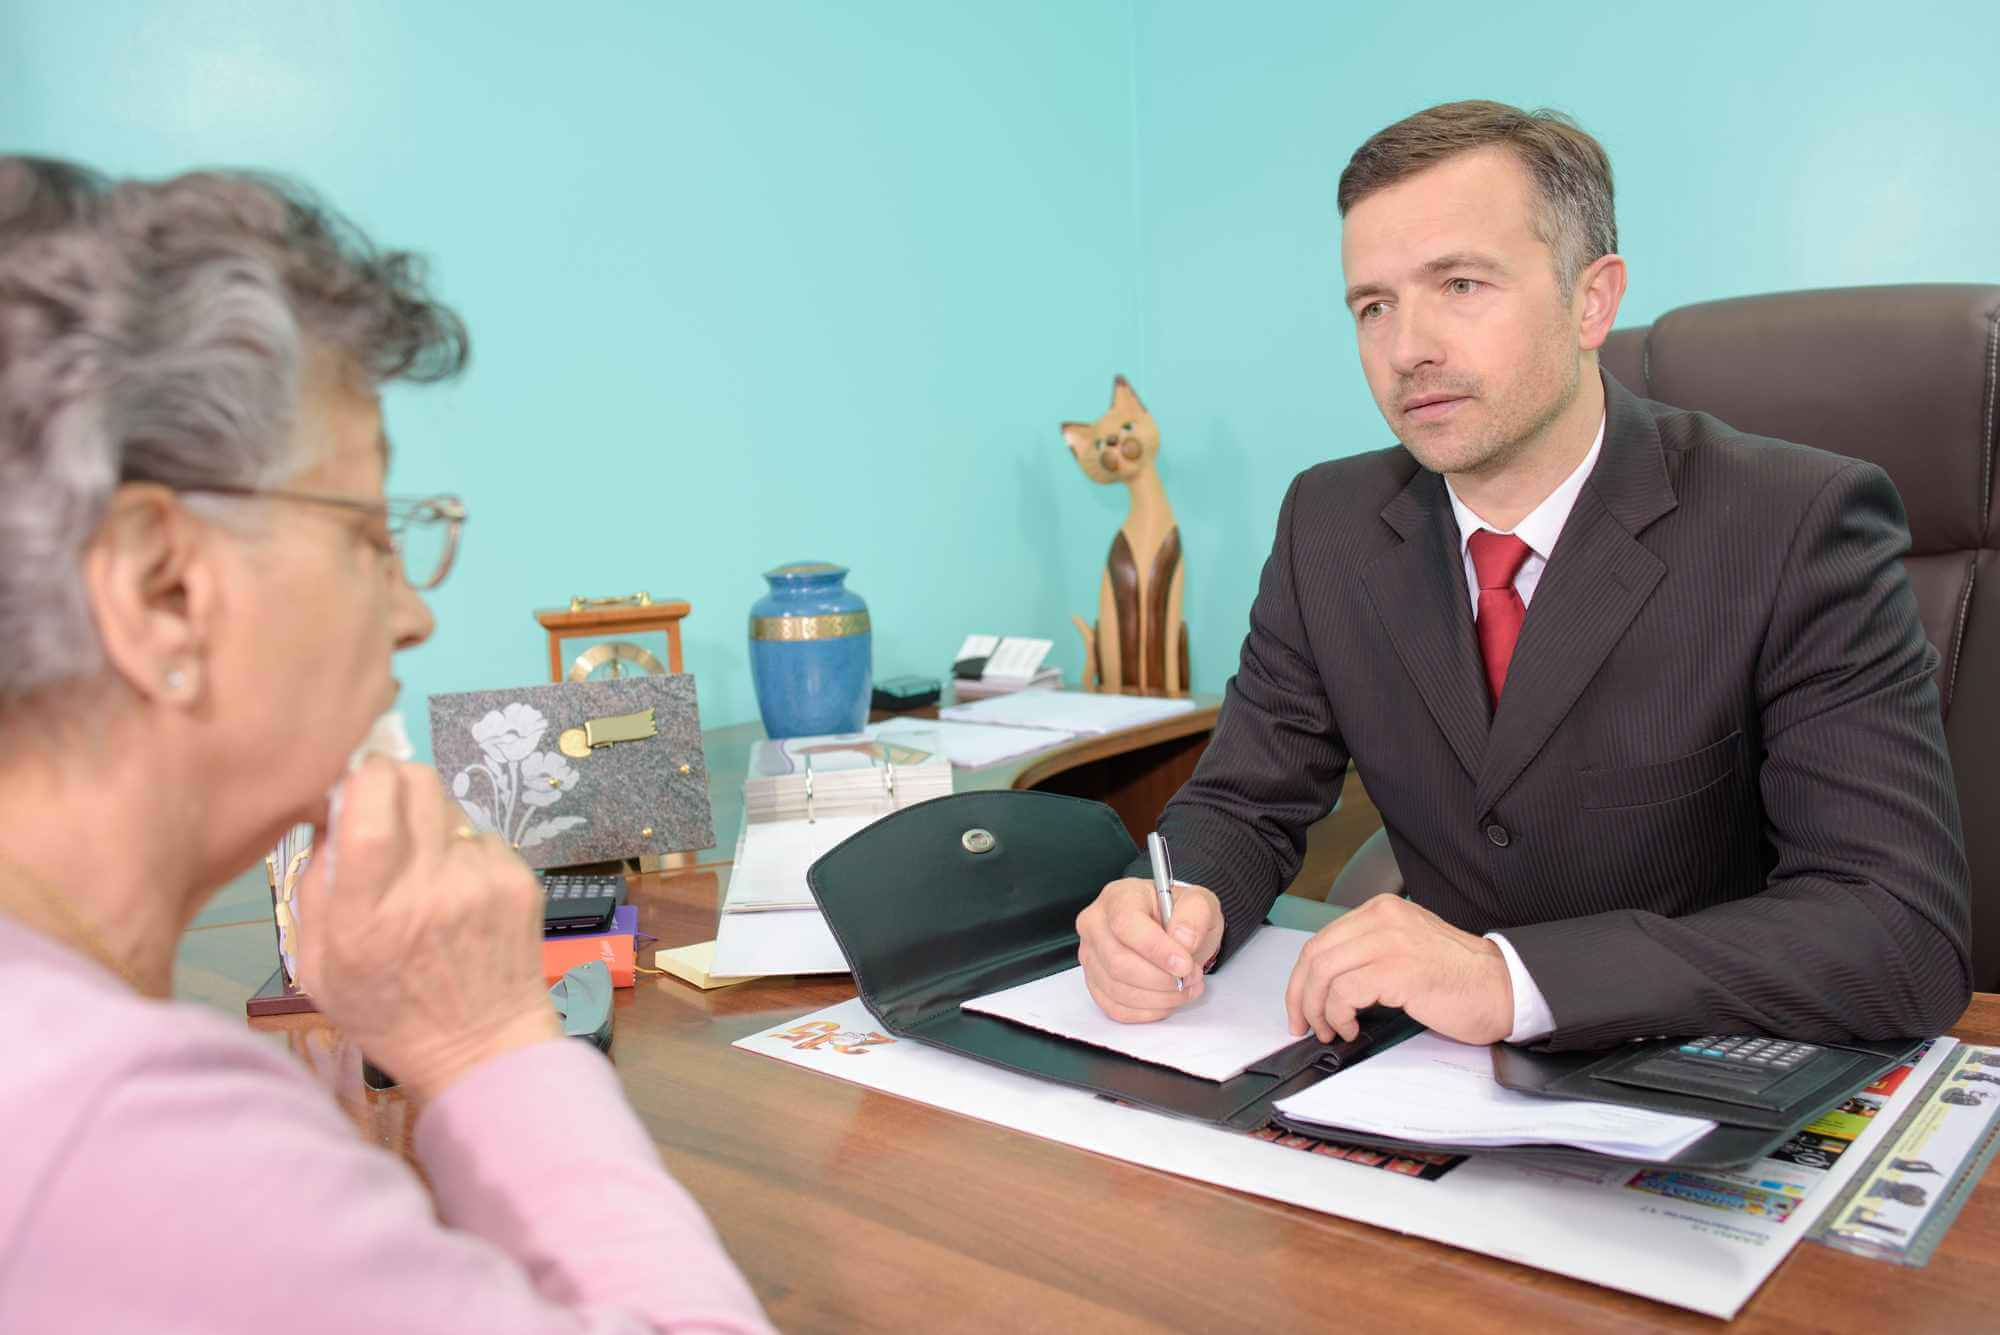 funeral director discussing funeral costs with an elderly woman